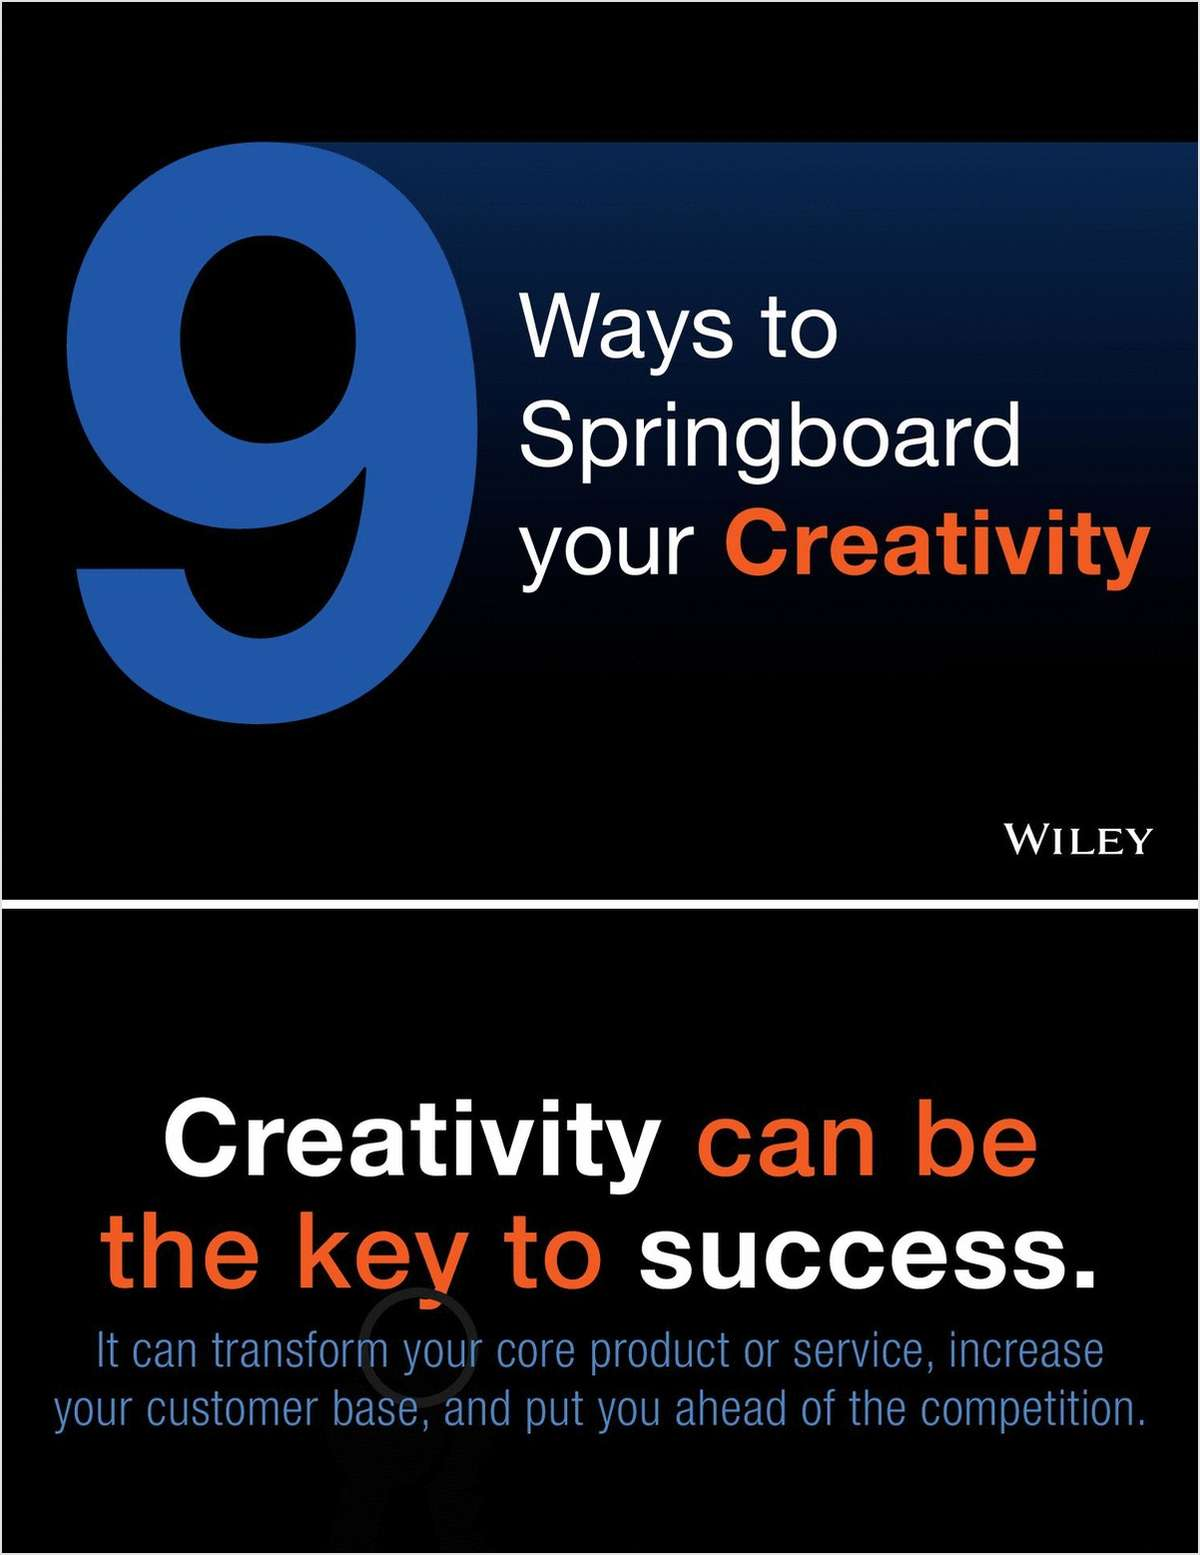 9 Ways to Springboard your Creativity